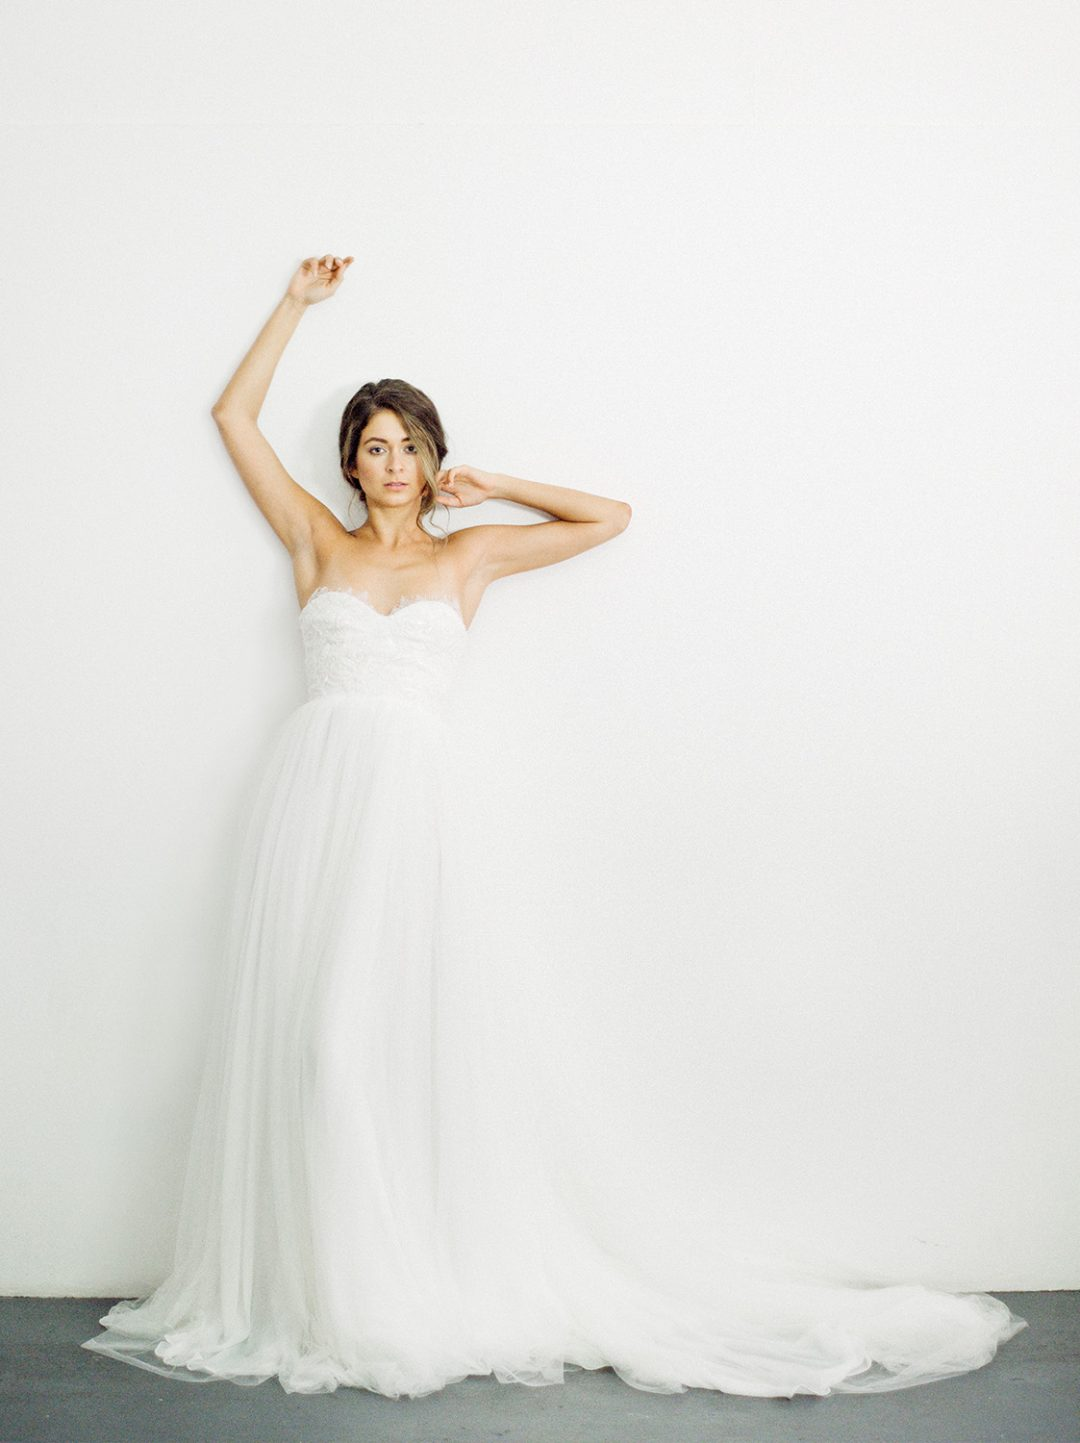 """SIBO Designs 2018 Collection - Couture Strapless Lace Bridal Gown """"Hope"""" www.sibodesigns.com"""